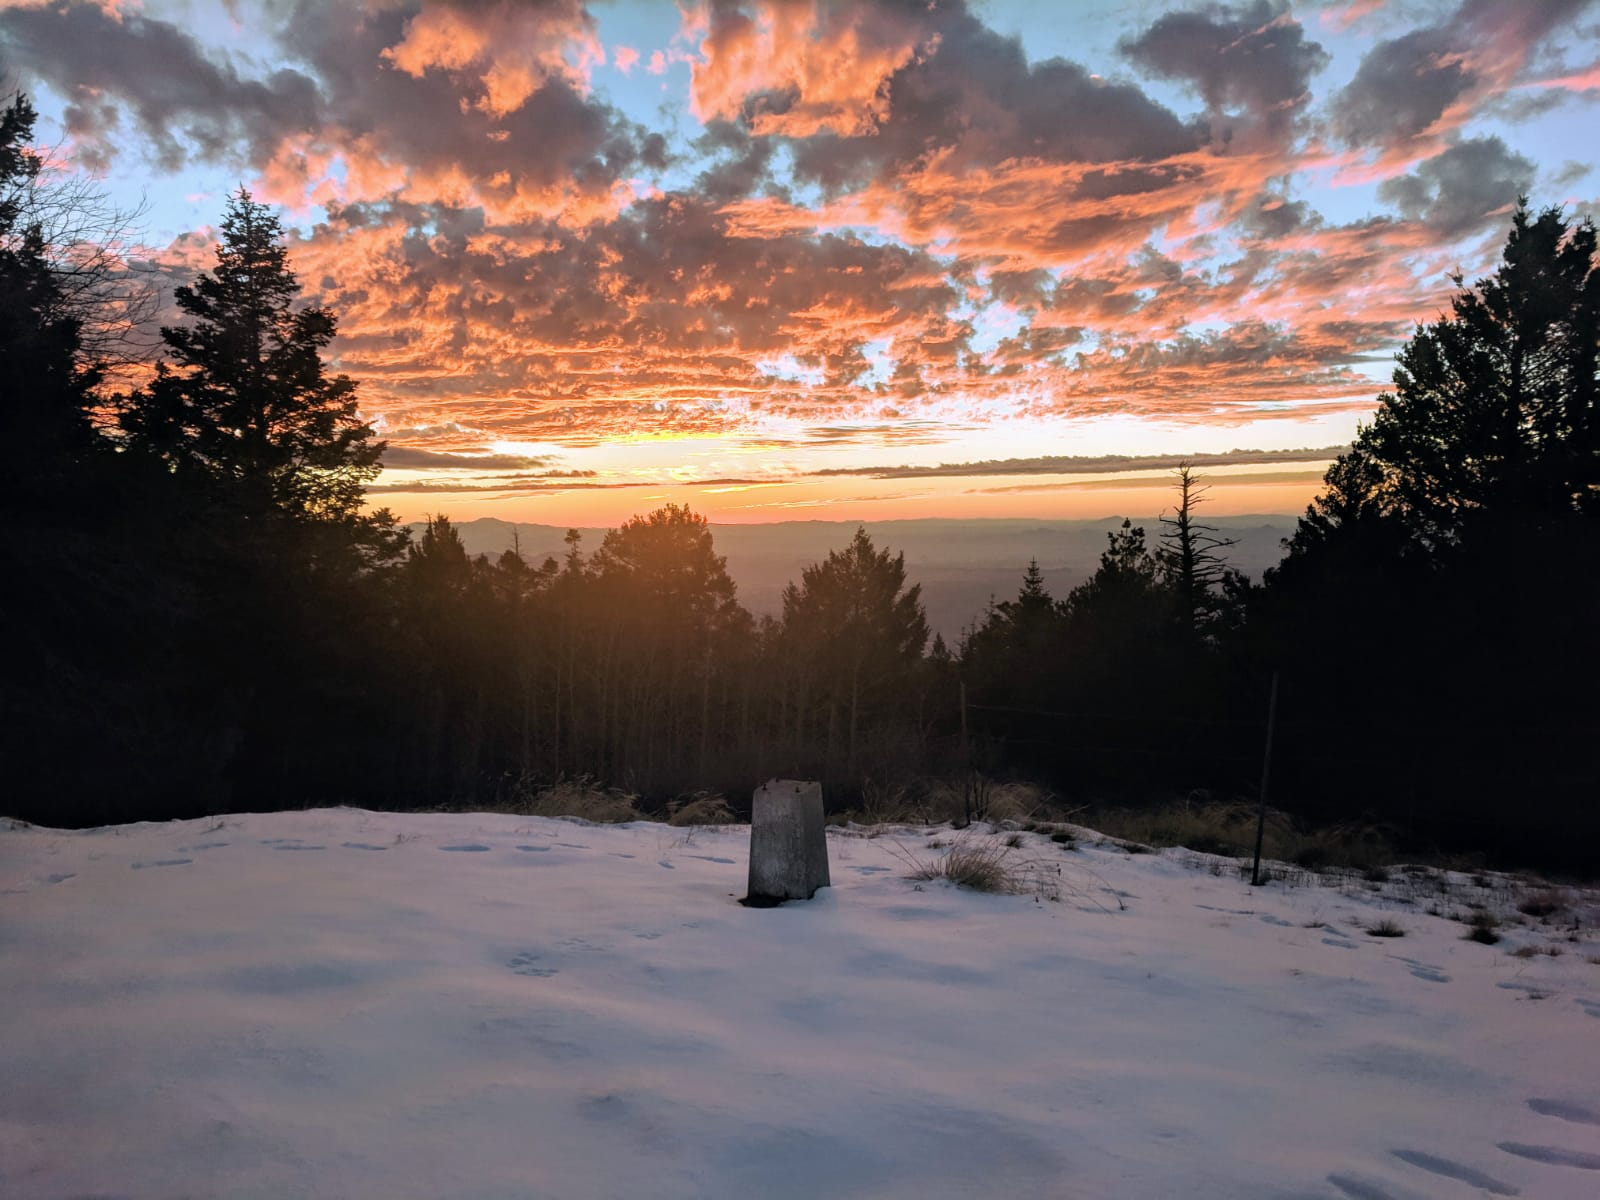 Winter sunset with clouds at Mt. Lemmon SkyCenter